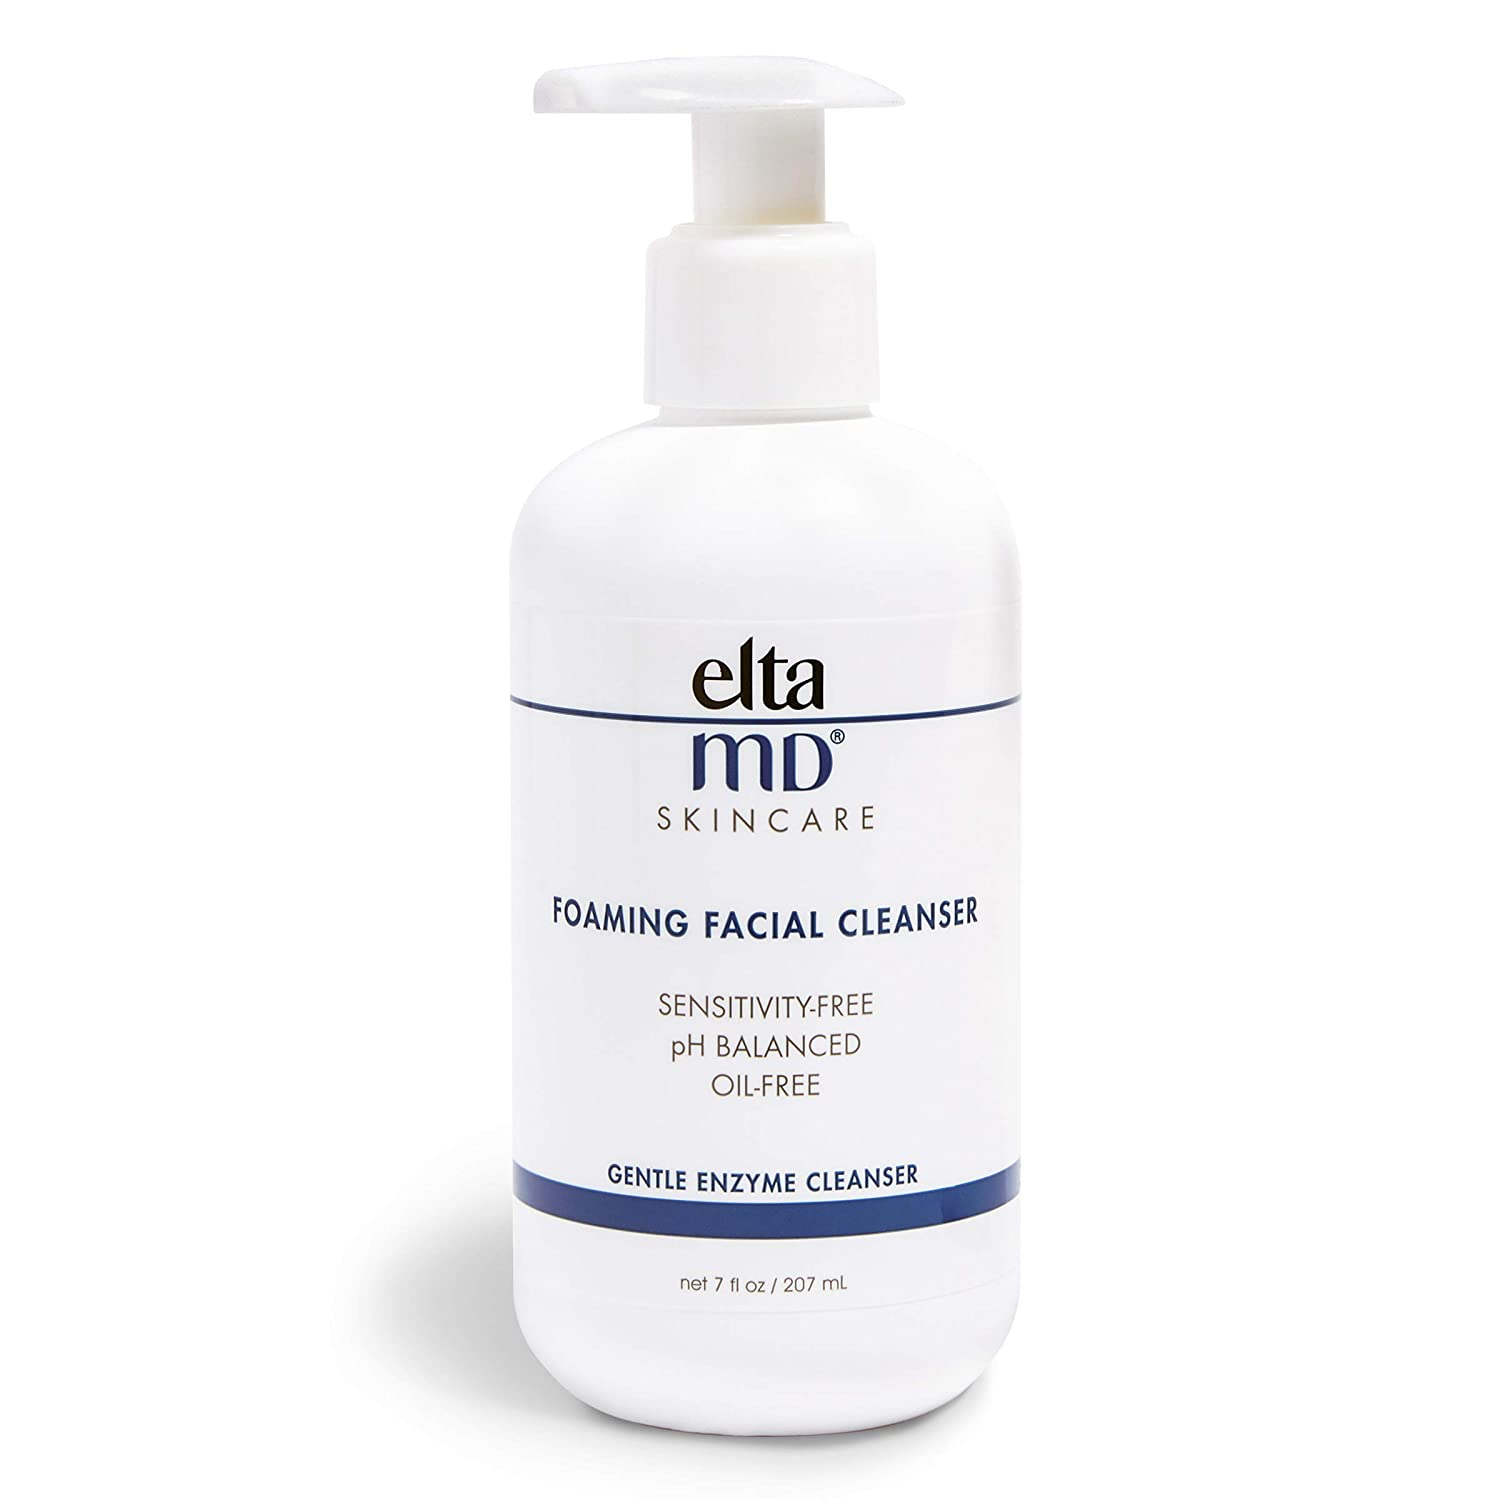 EltaMD Foaming Facial Cleanser, Gentle, Oil free, Sensitivity free,  Dermatologist Recommended Enzyme & Amino Acid Face Wash & Makeup Remover